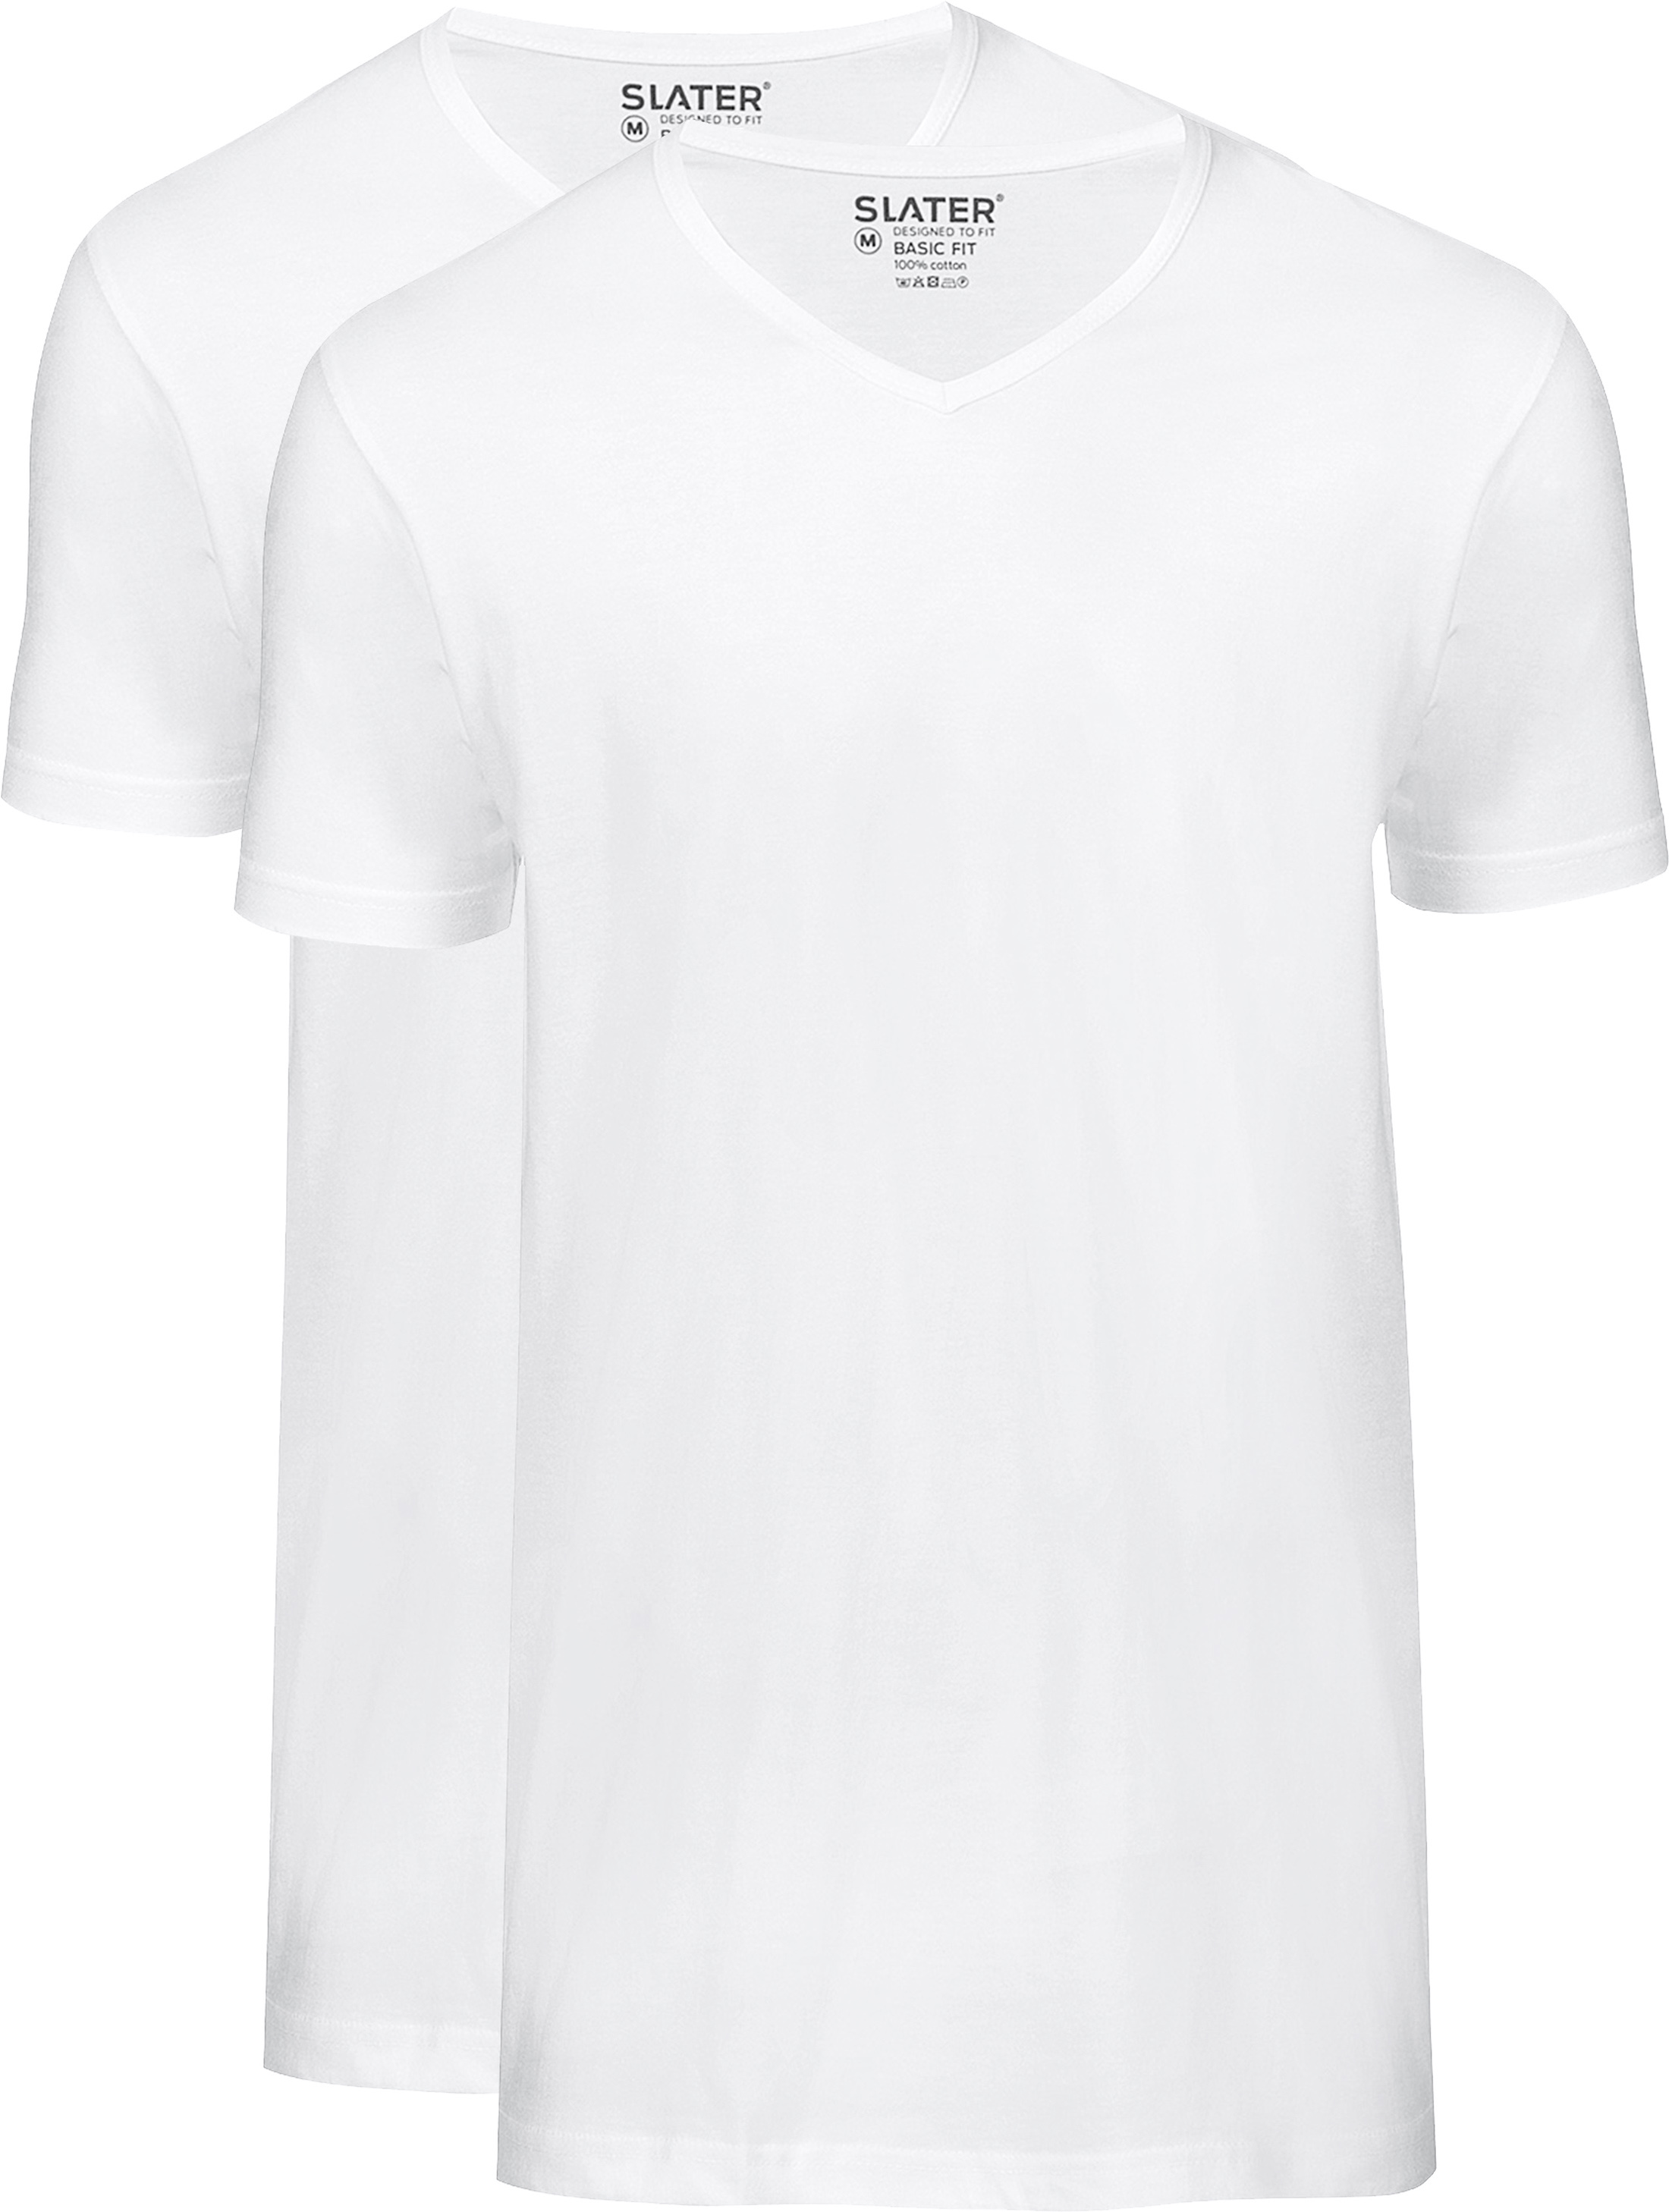 Slater 2-pack Basic Fit T-shirt V-neck White foto 0